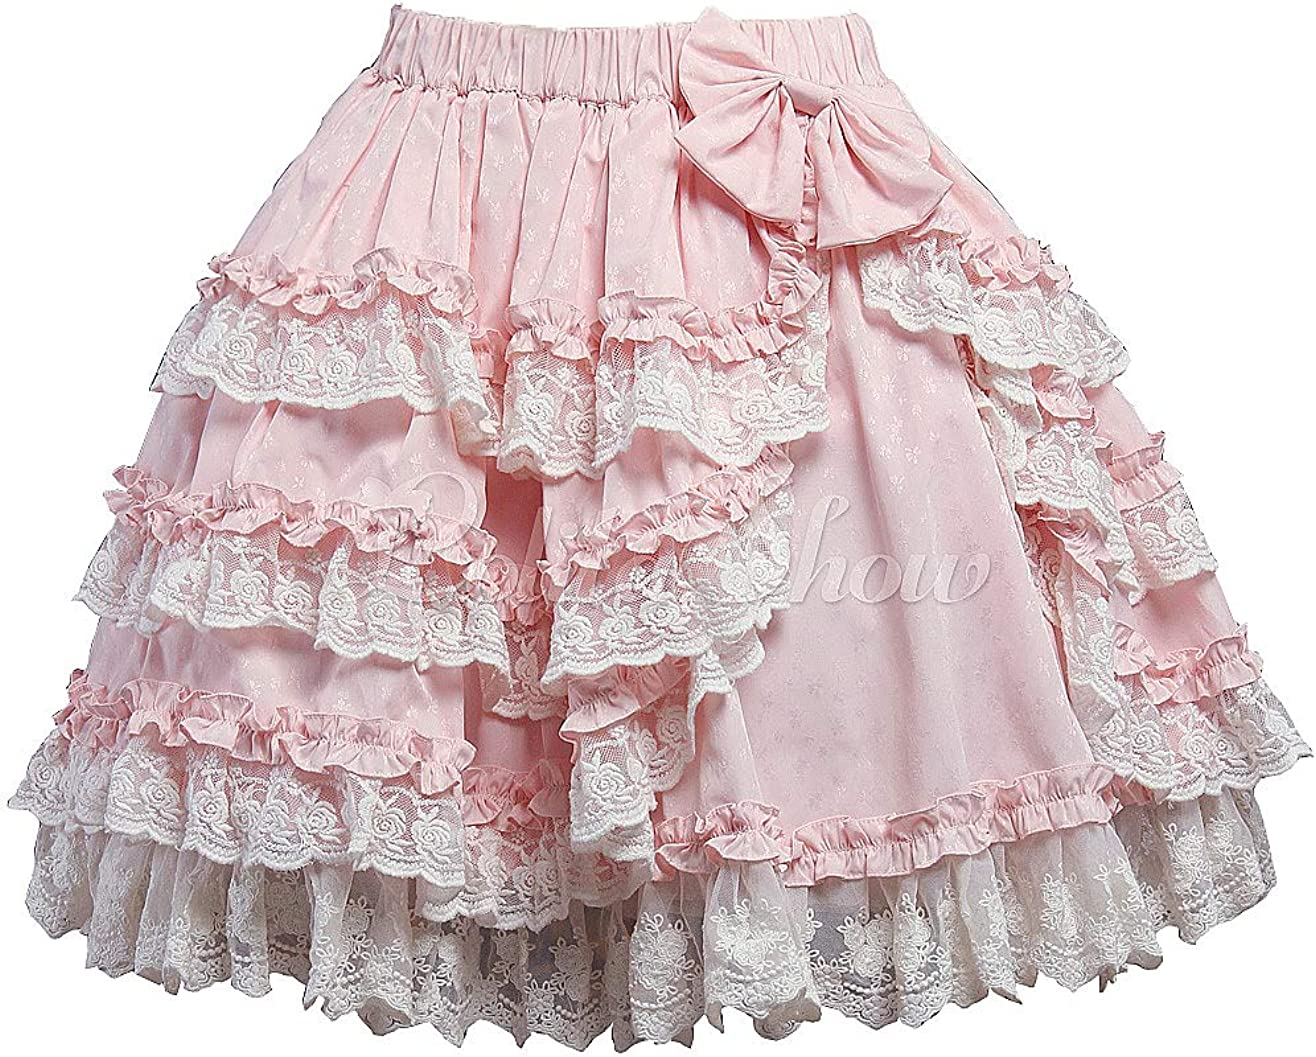 Antaina Pink Cotton Floral Lace Ruffled Layered Bow Sweet Lolita Underskirt